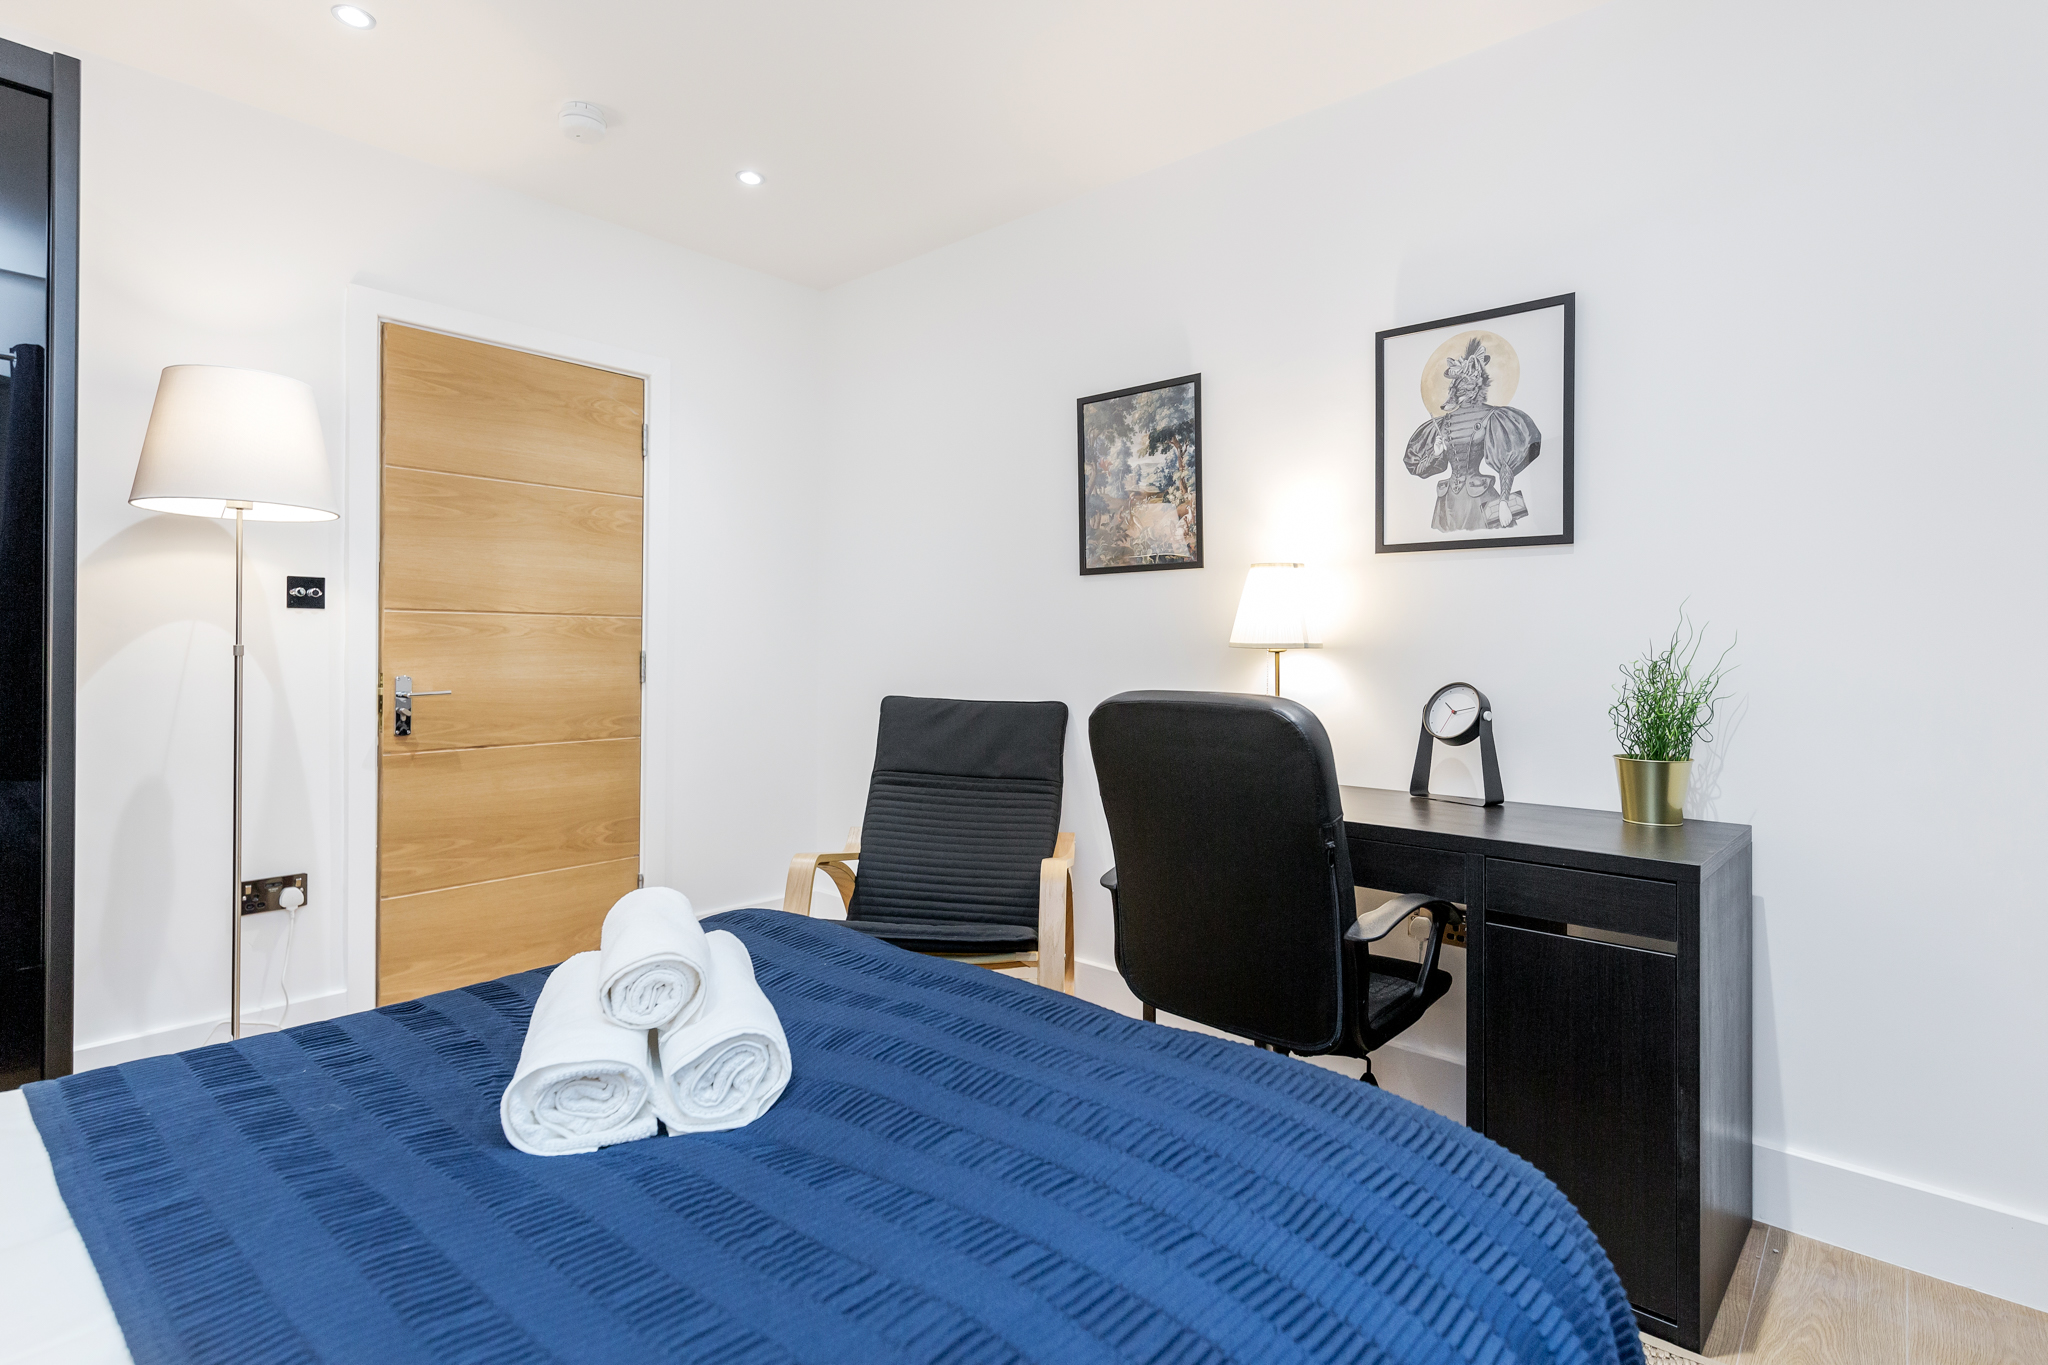 Apartment Stunning 1 bedroom flat with private garden minutes away from Tower Bridge photo 20237806